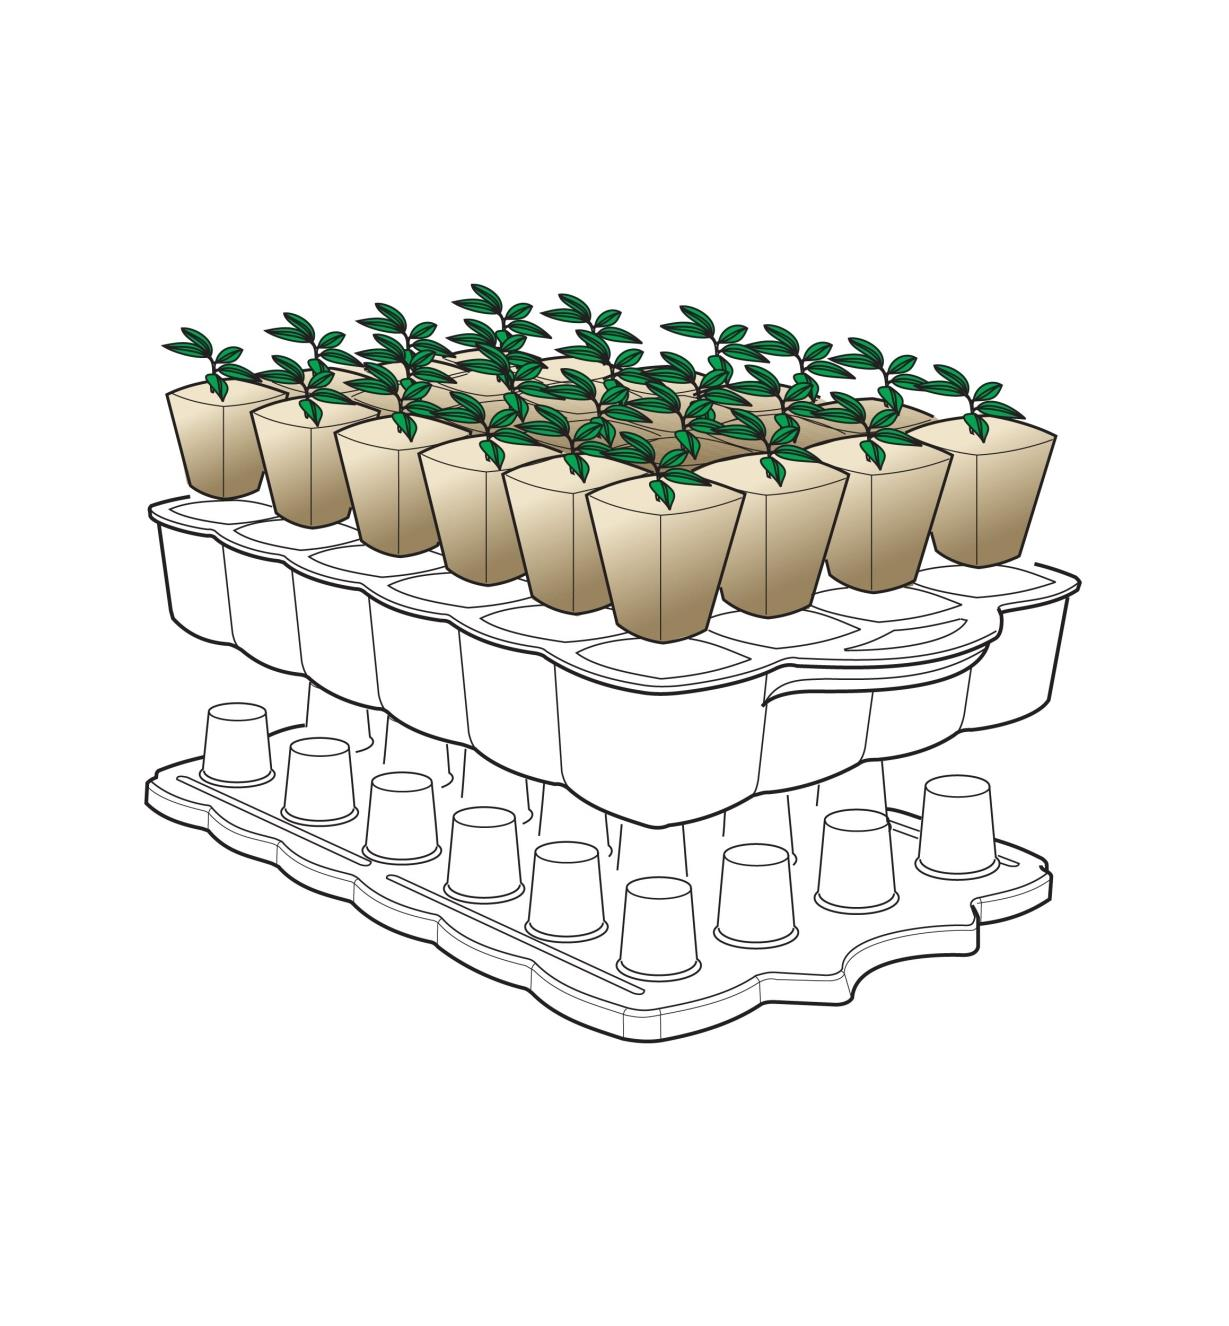 Diagram demonstrating how the growing stand is turned over to eject seedlings from the tray